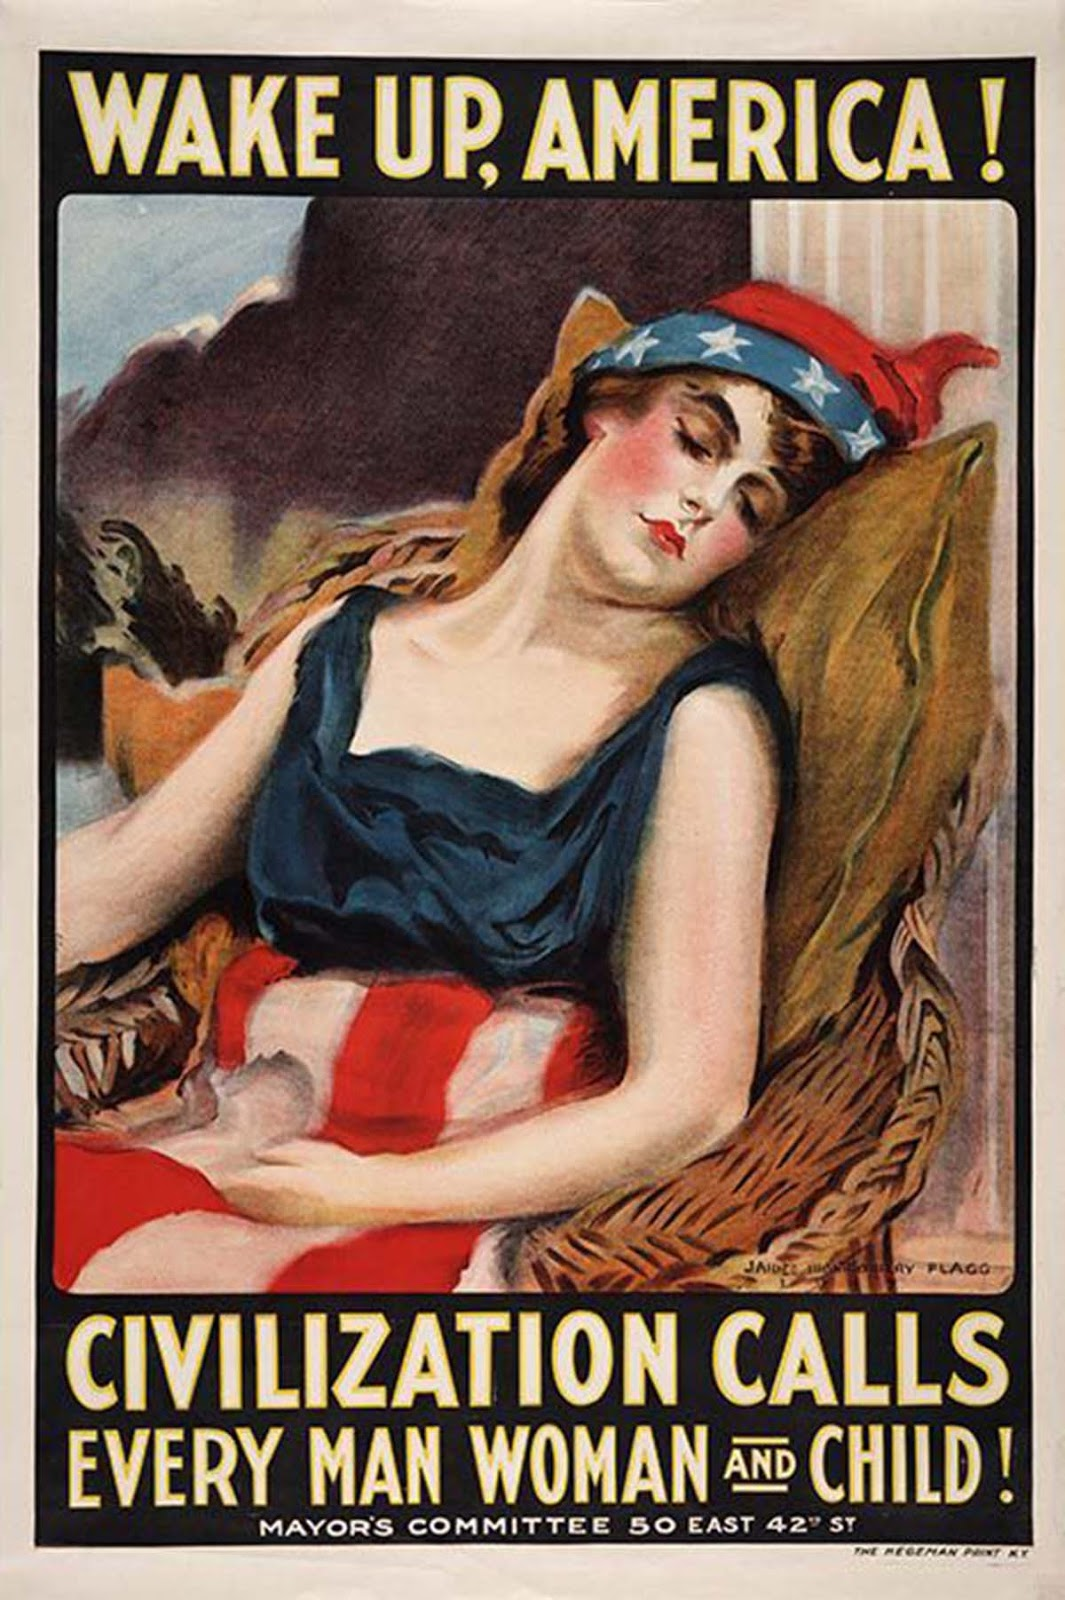 Wake Up, America! Civilization Calls Every Man Woman and Child!, 1917, James Montgomery Flagg.